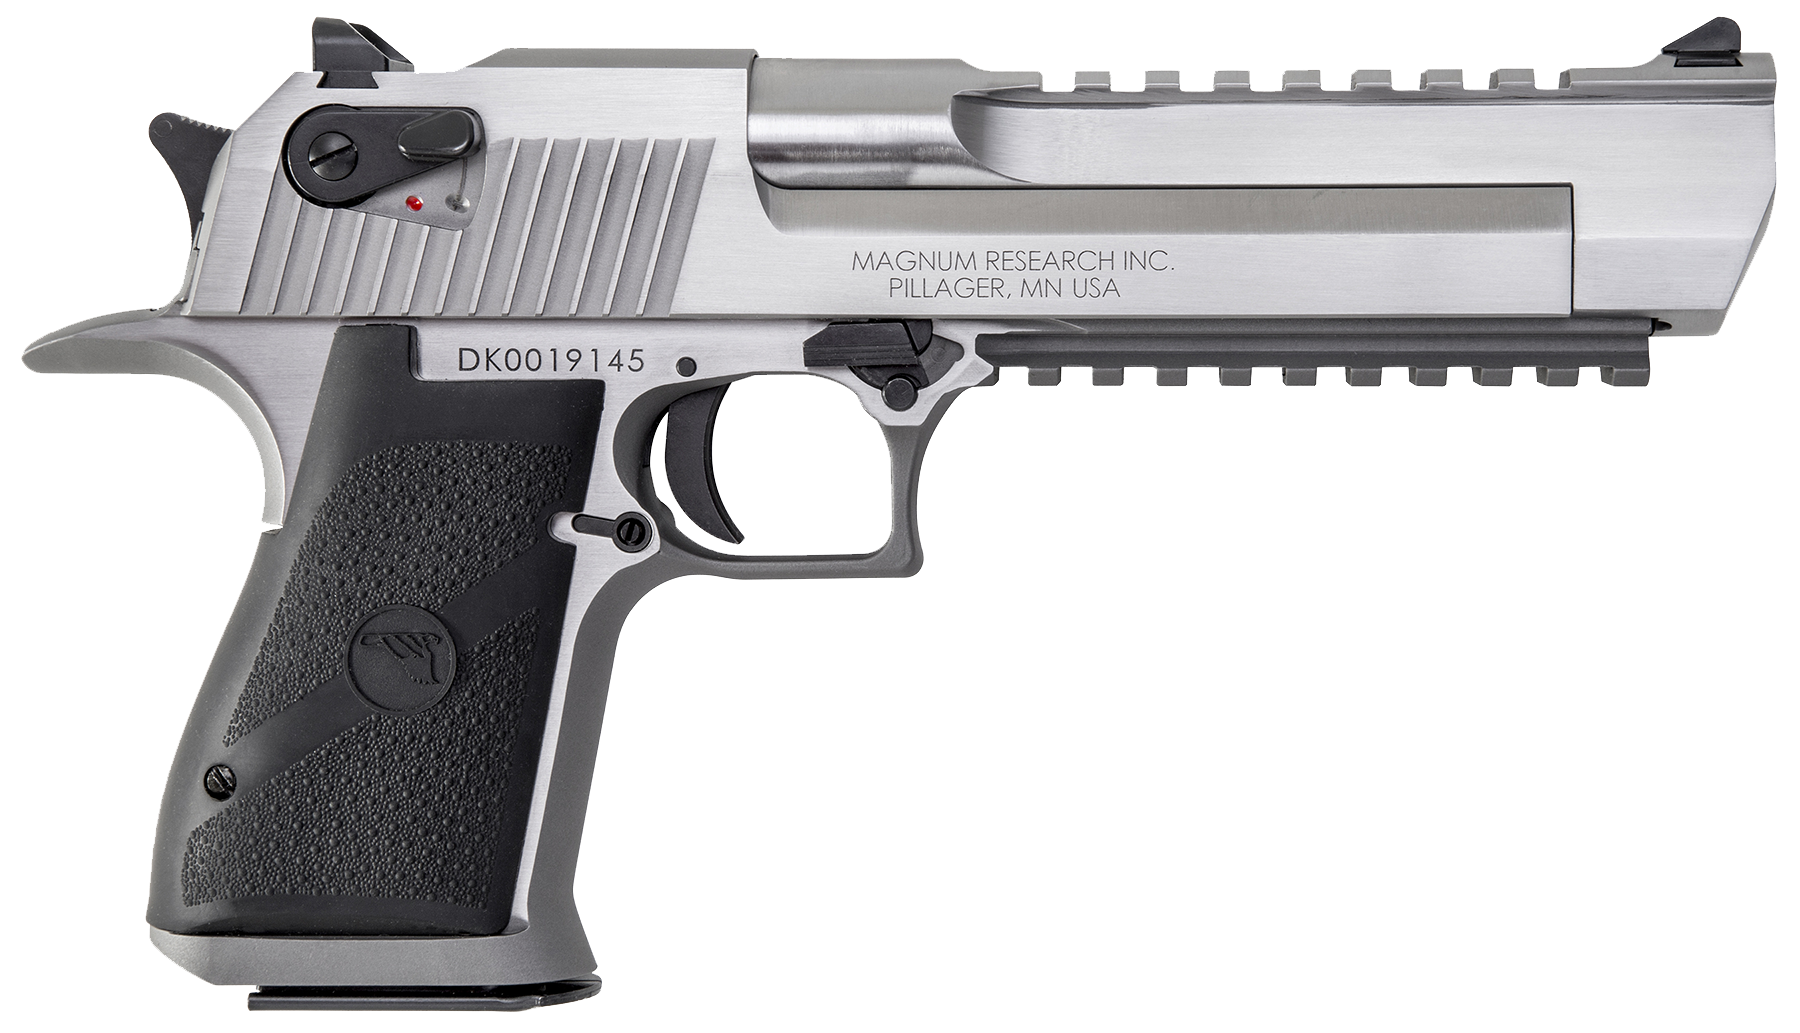 Desert eagle png. Magnum research de sr